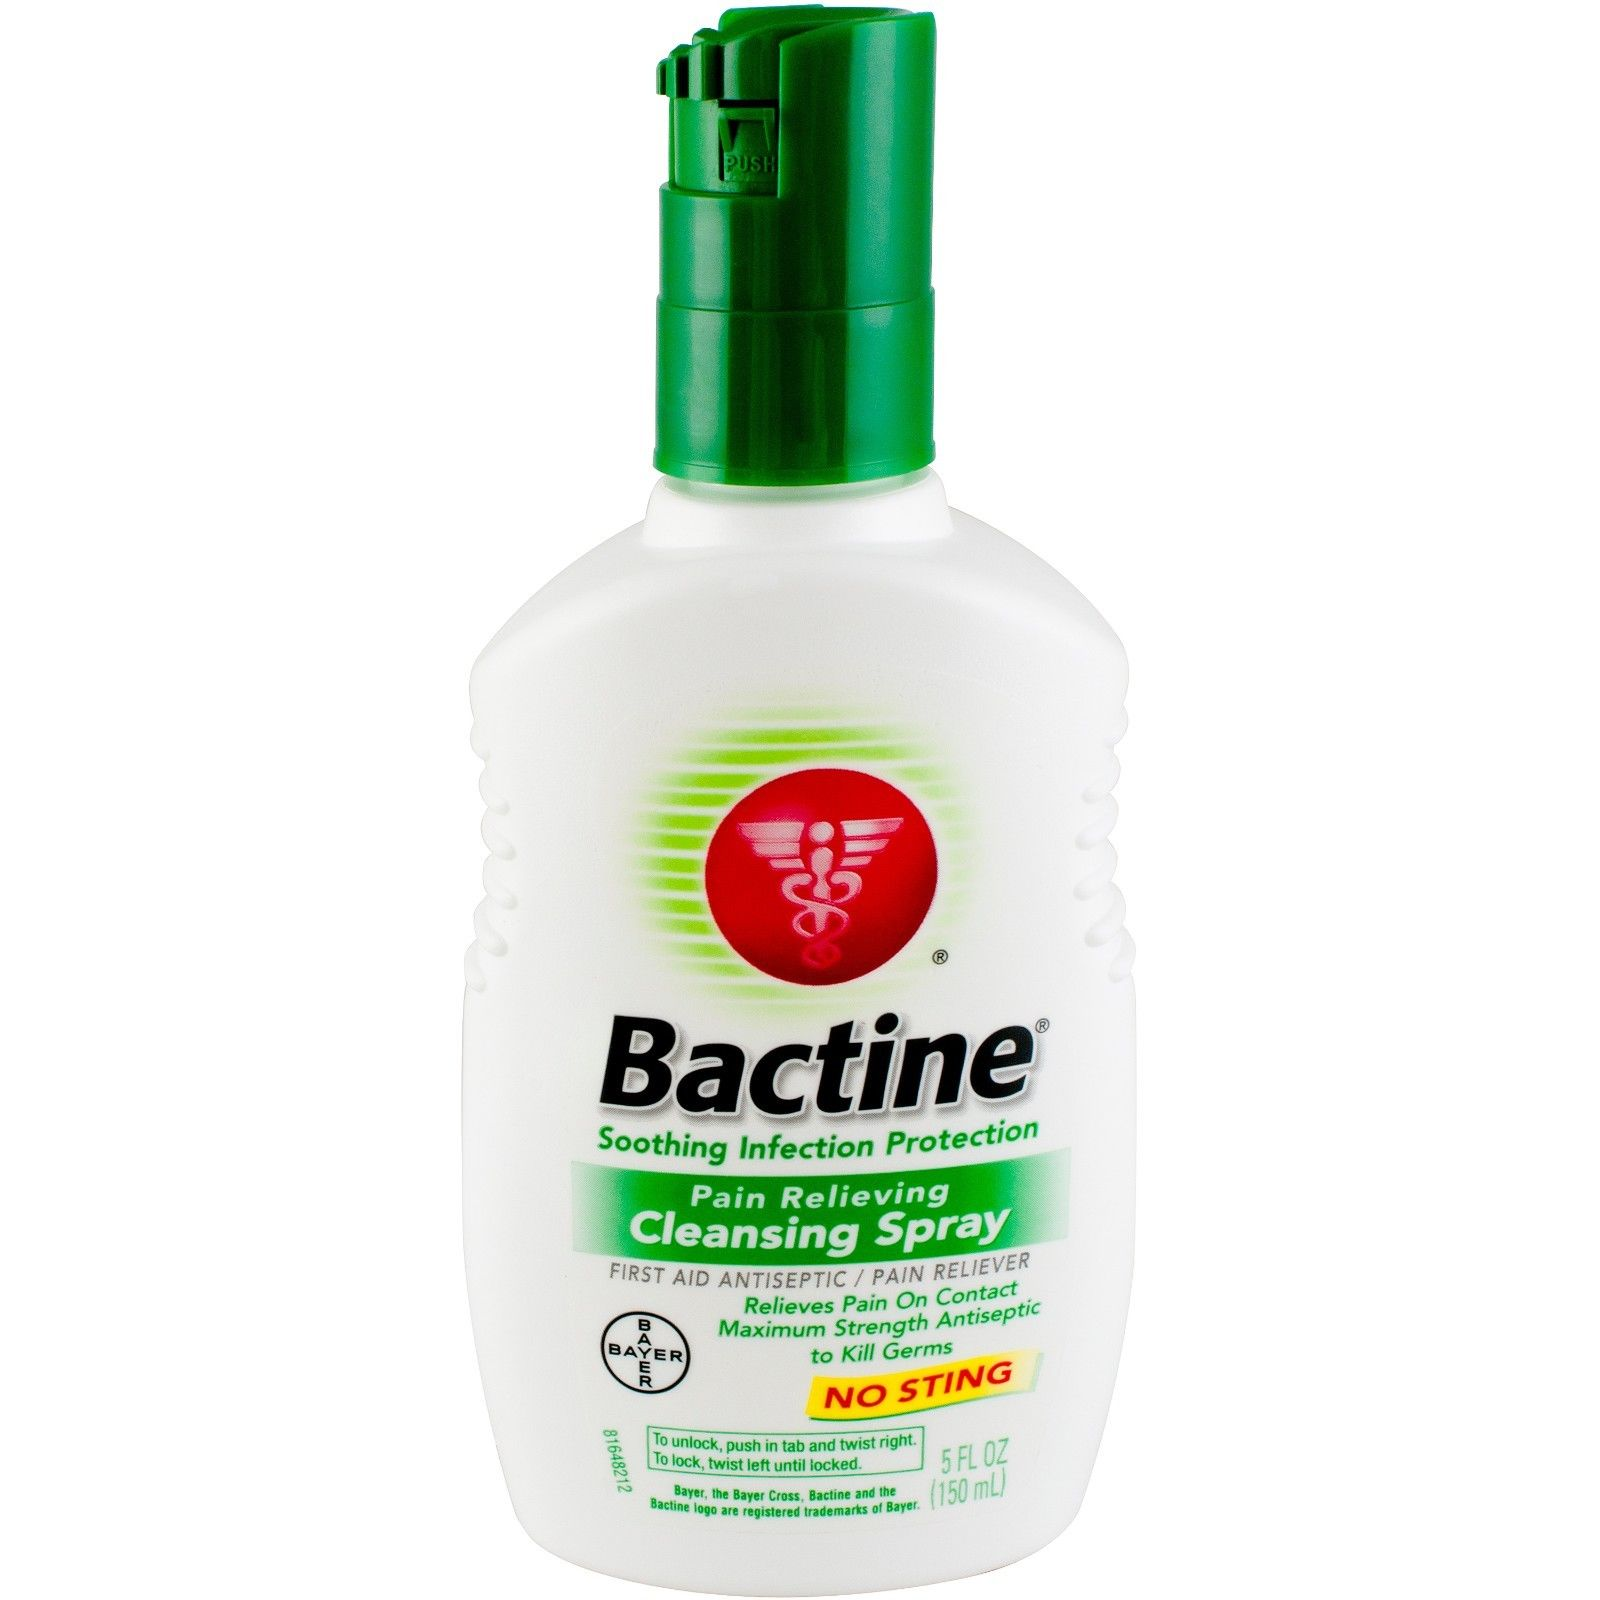 Image of the illigal product: Bactine